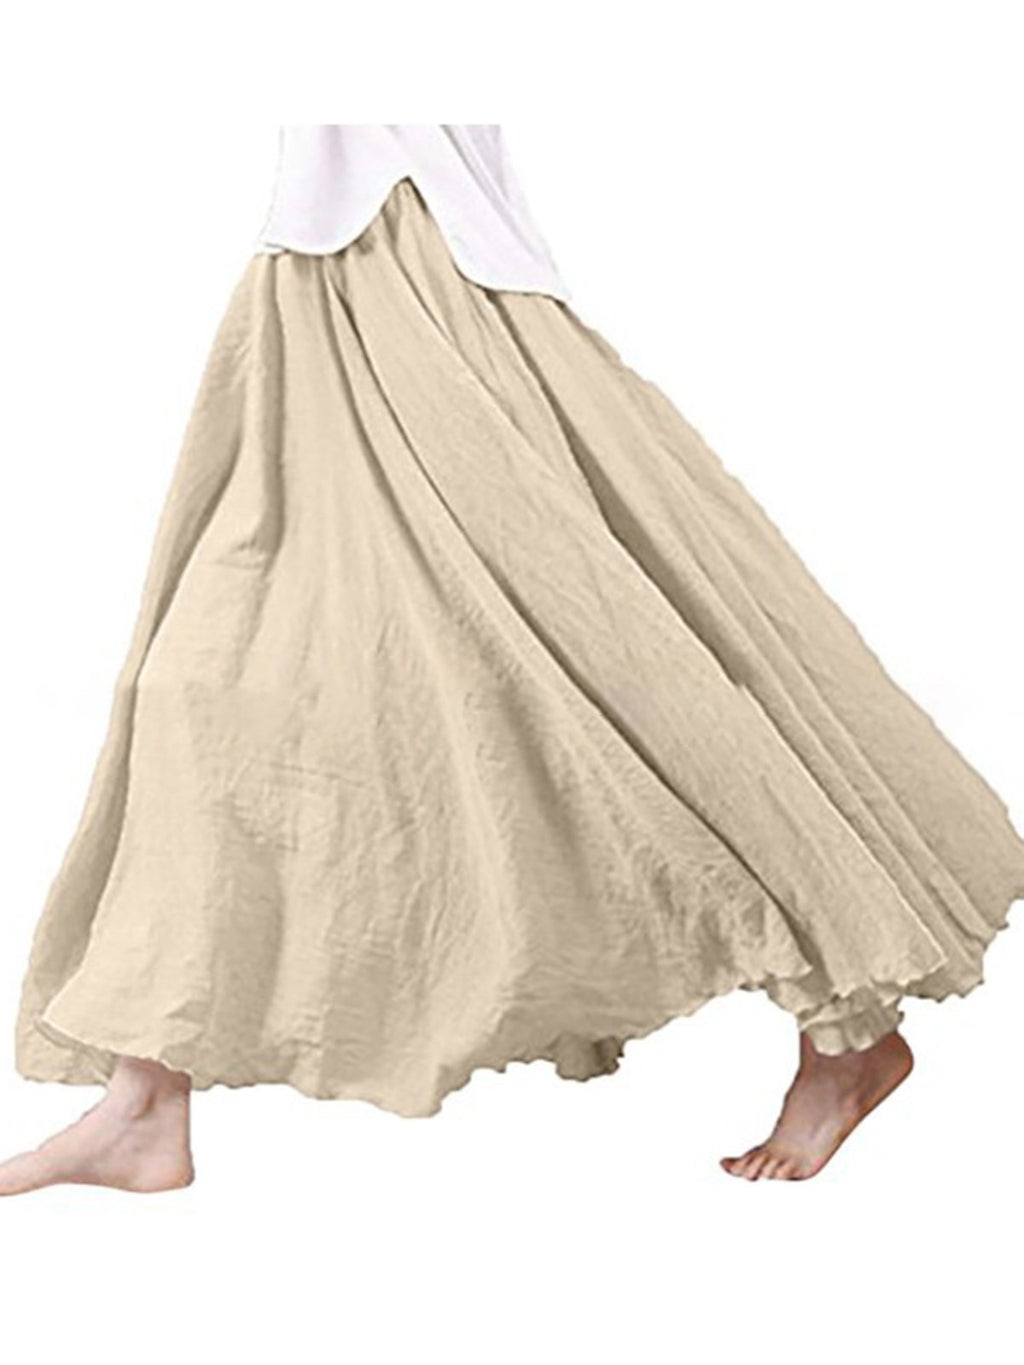 Solid Linen/Cotton Midi Length Ruffle Skirt